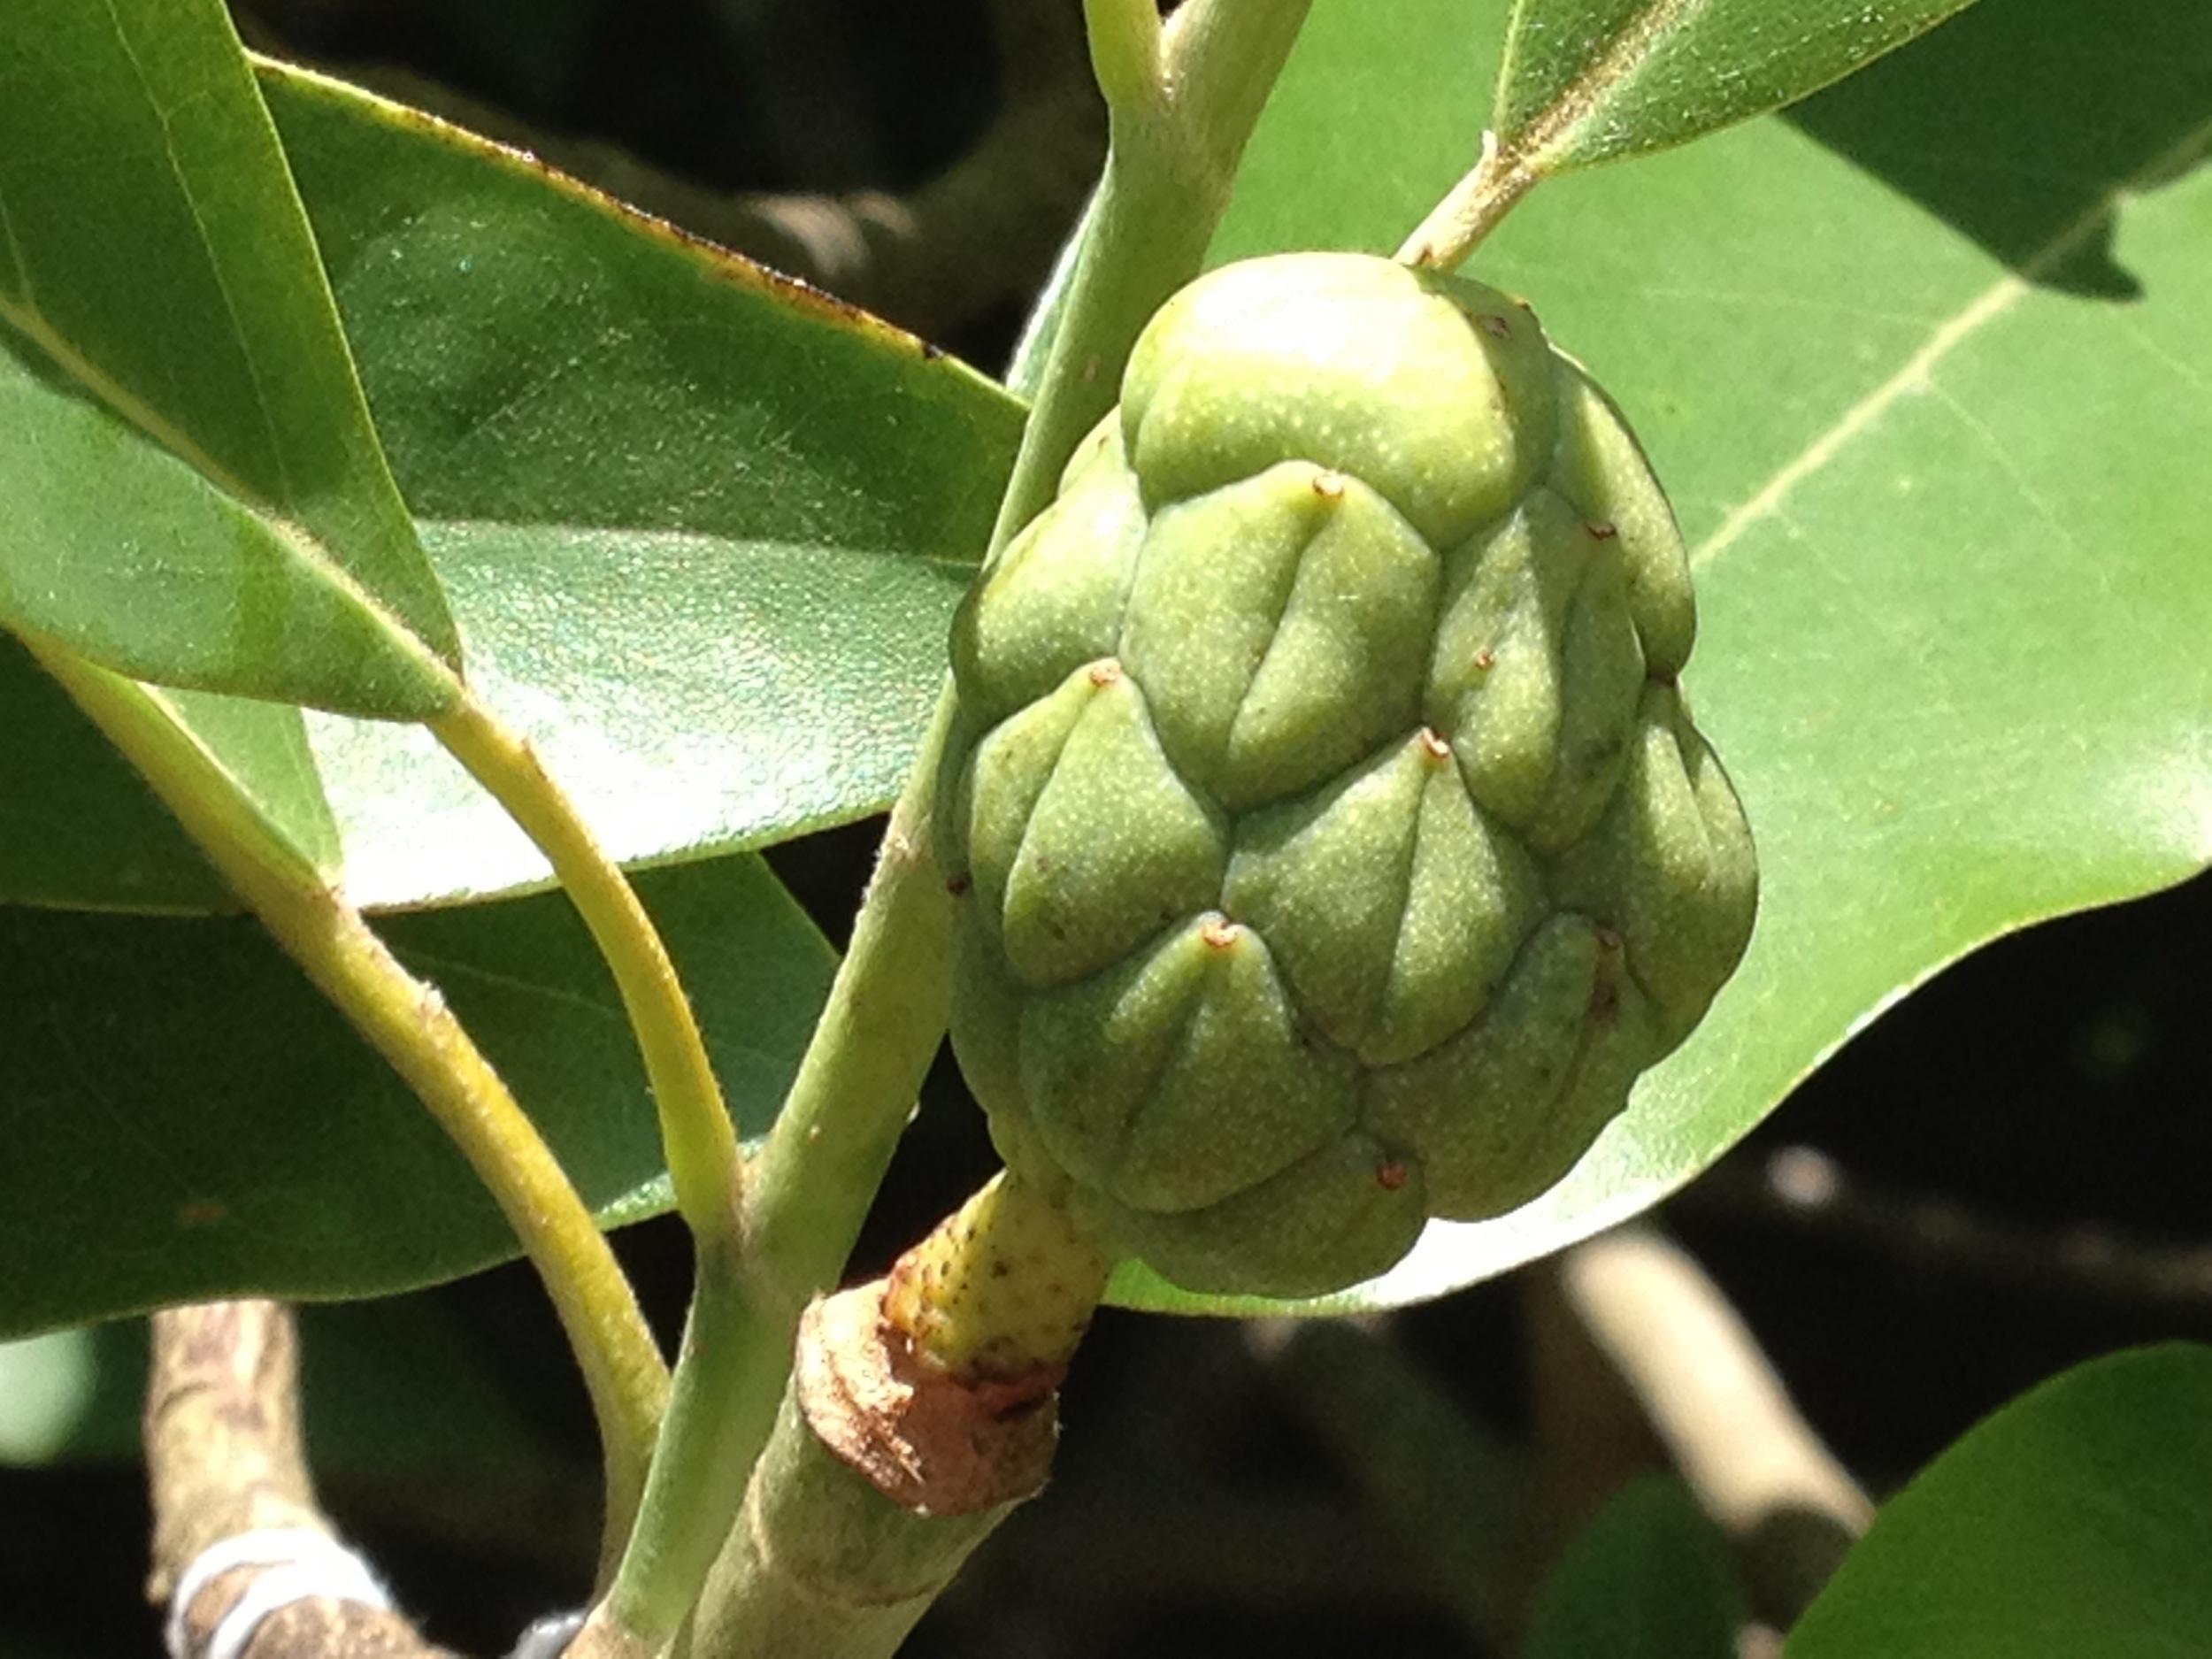 Magnolia virginiana (Louisiana form) x M. lotungensis is looking like it may produce seed.